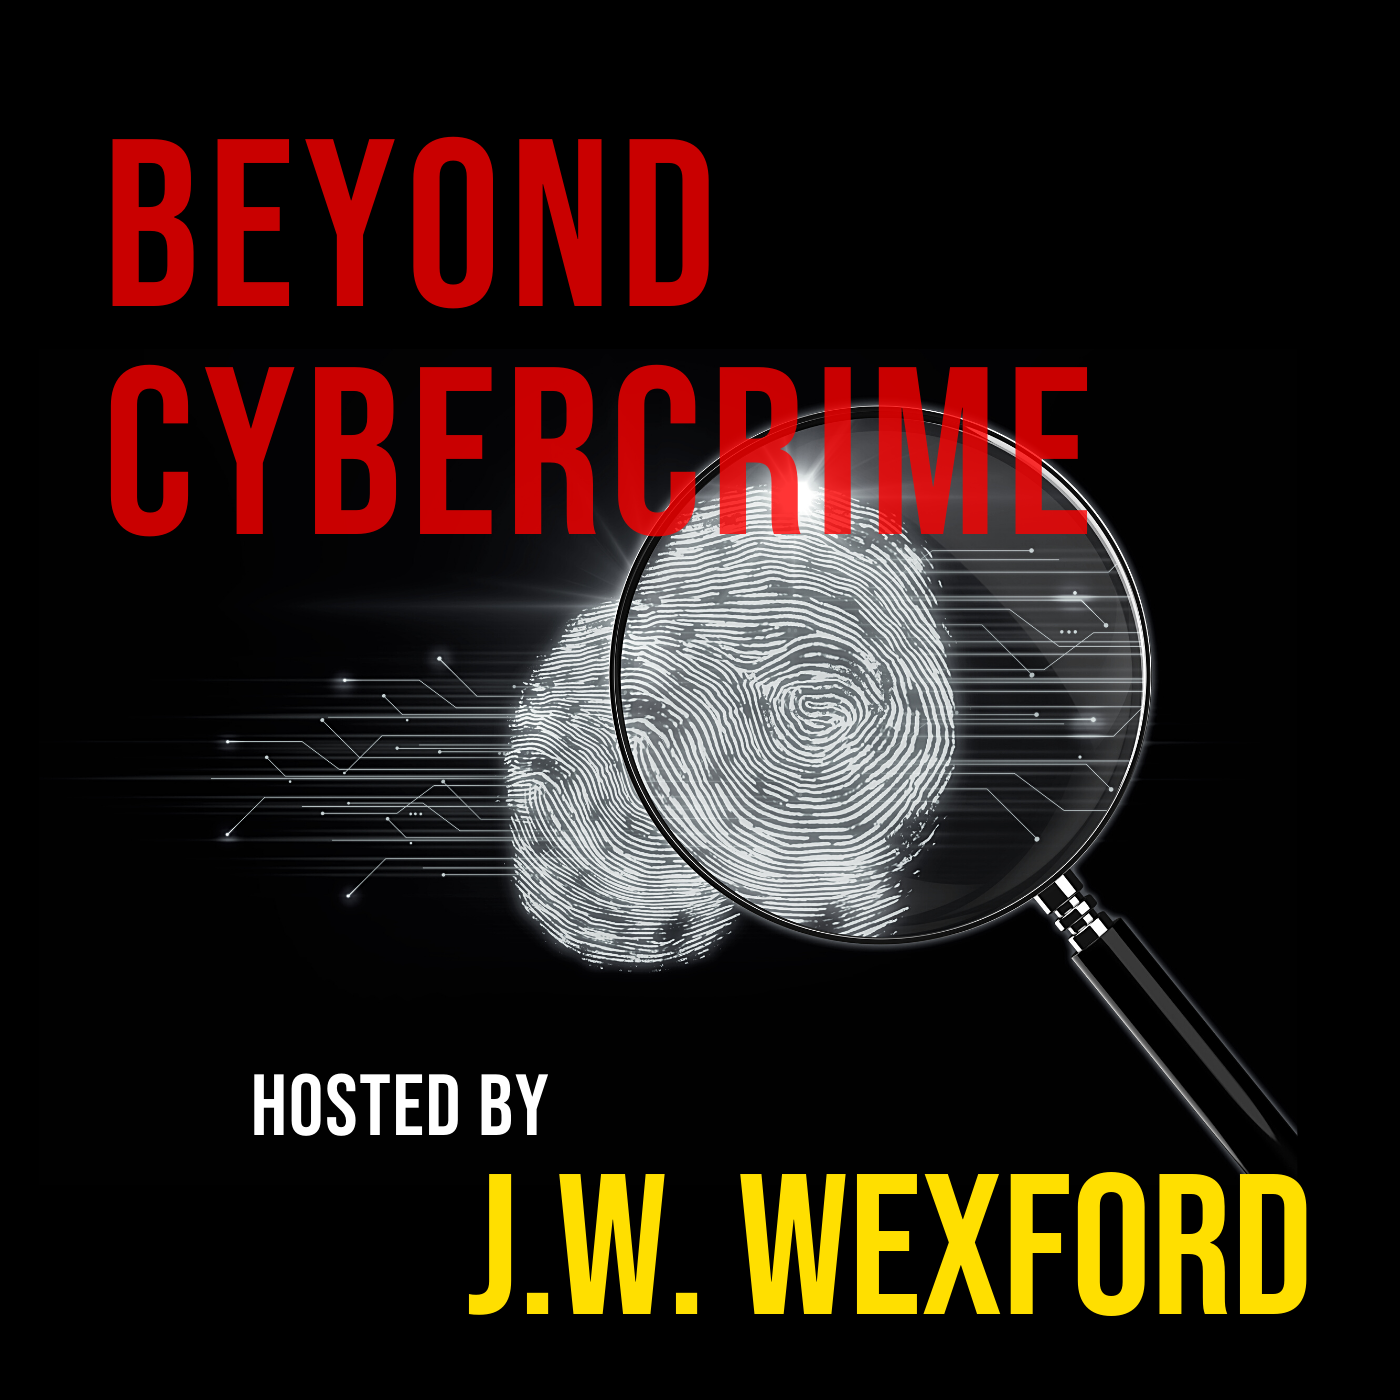 Beyond Cybercrime with J.W. Wexford show art